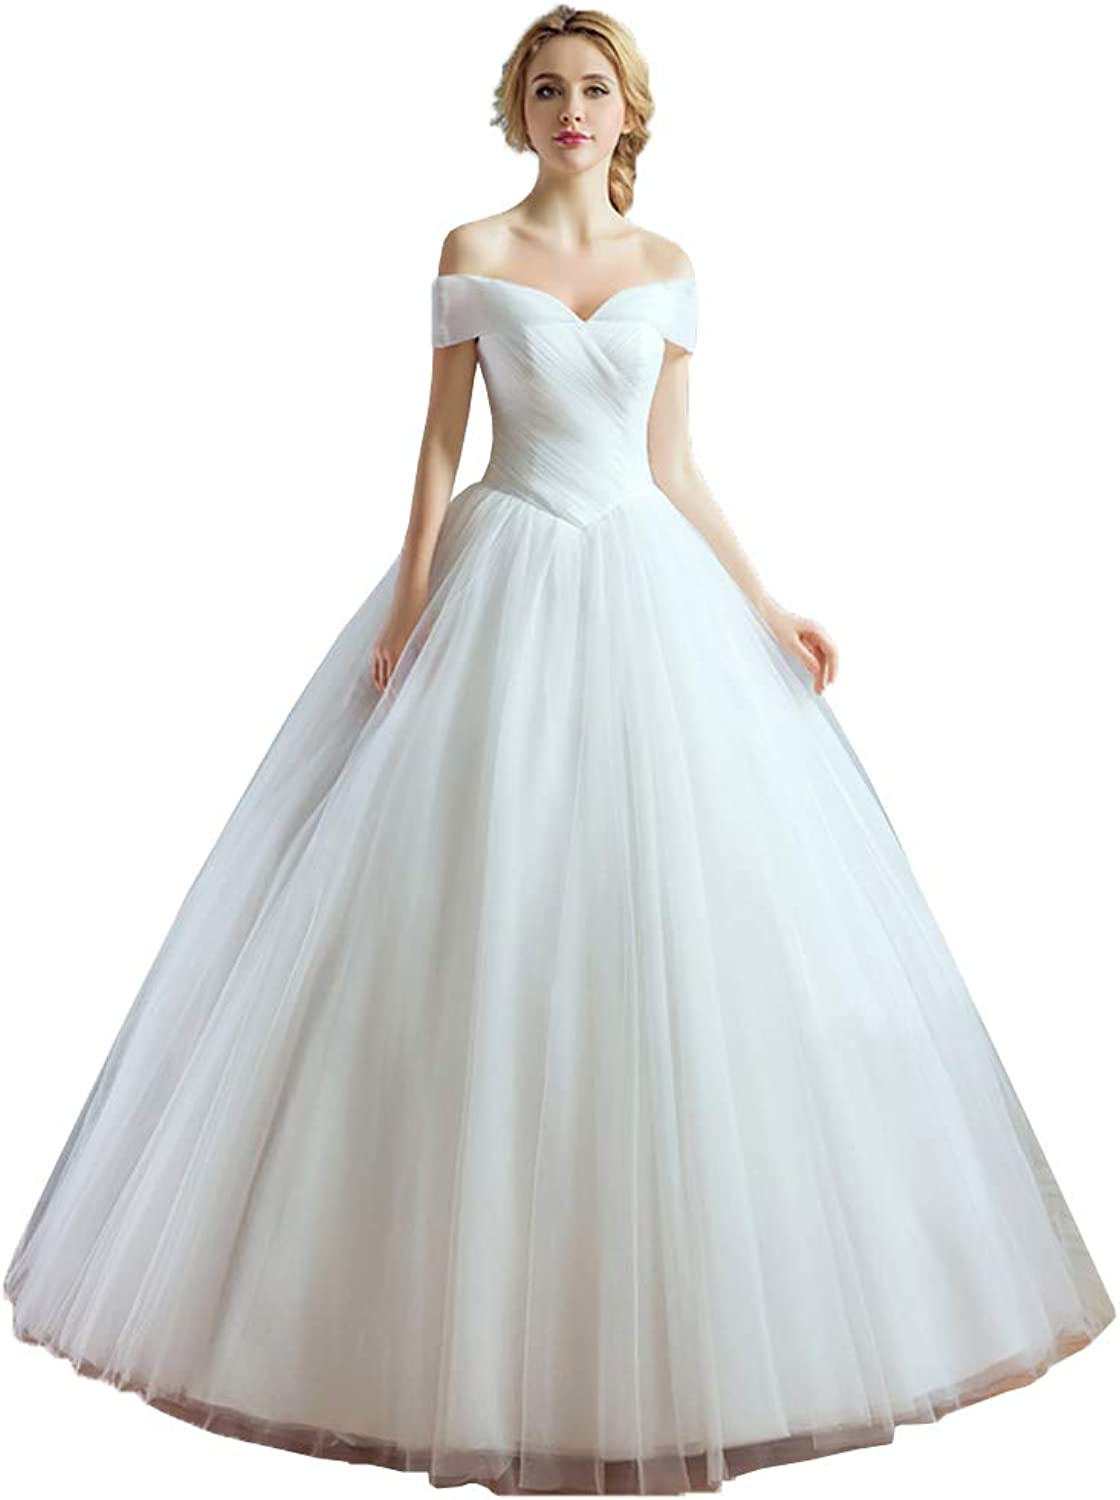 EileenDor Women's Sexy Off Shoulder Wedding Dresses Sleeveless Bridal Gown Pleated Ball Gown Evening Dresses